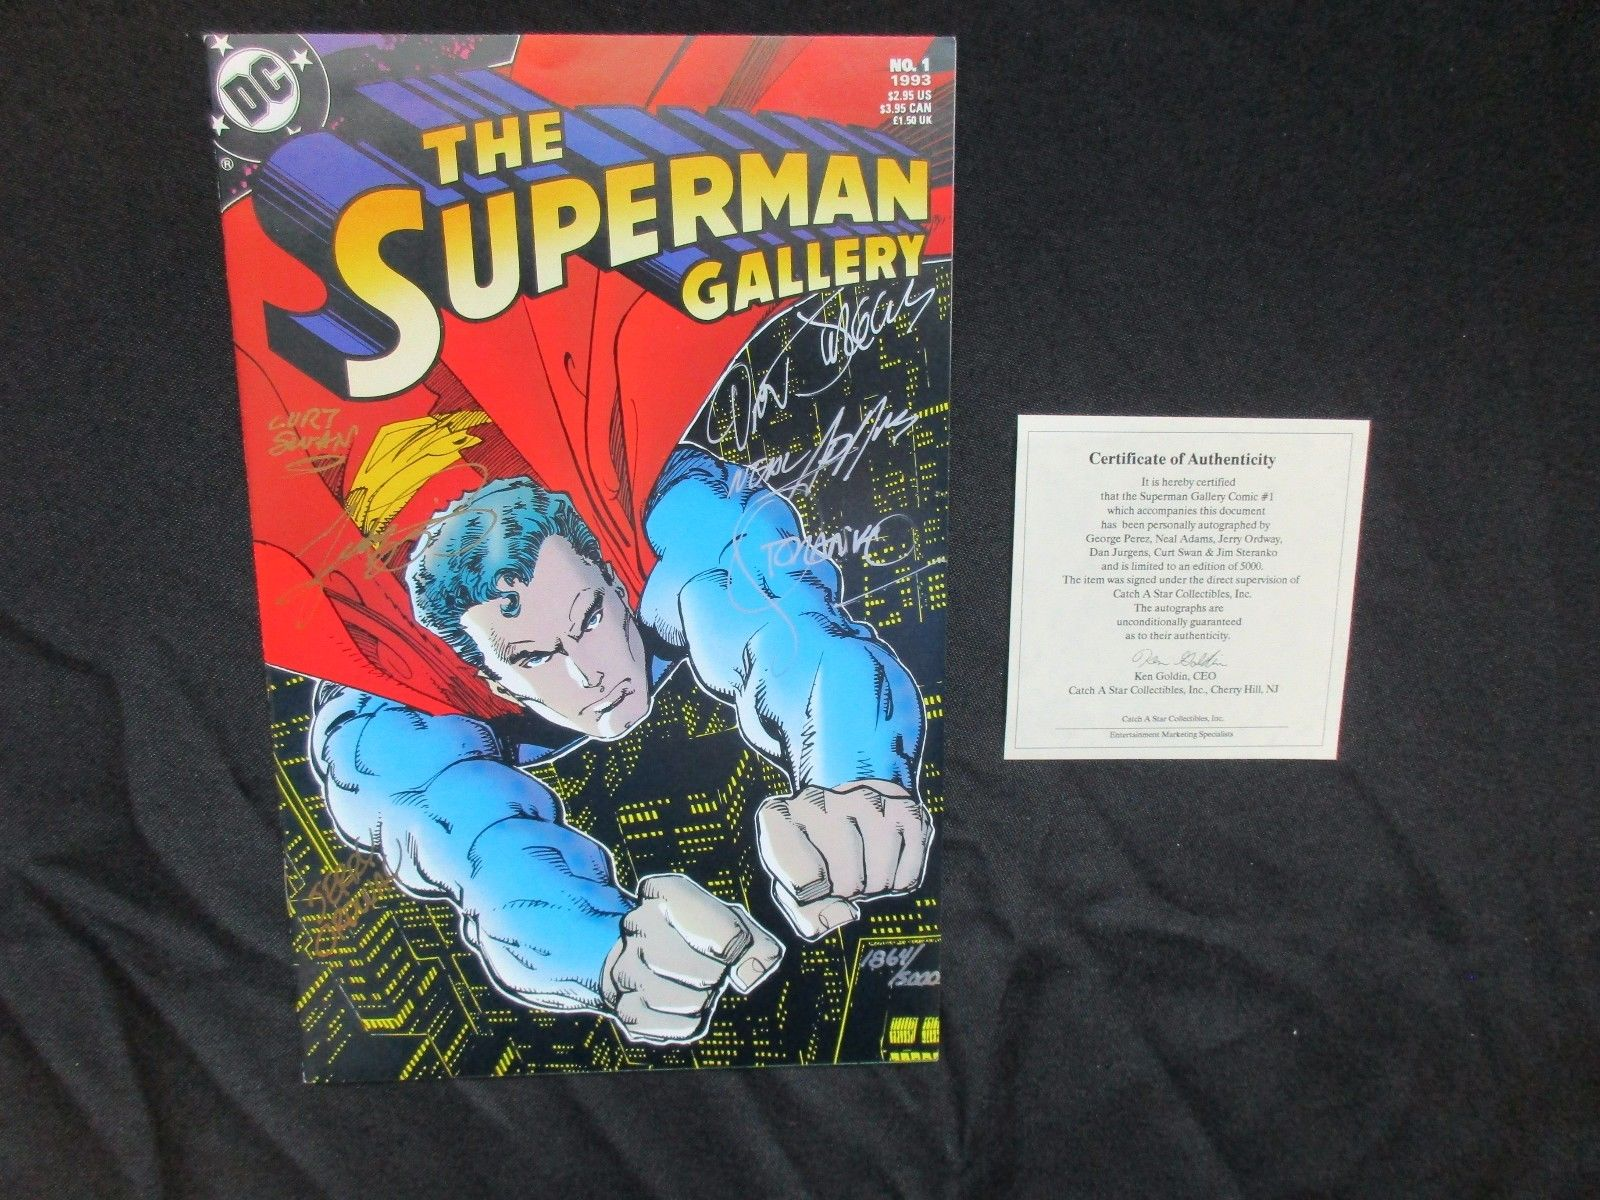 DC SUPERMAN GALLERY # 1 SIGNED X 6 WITH CERT NEAL ADAMS STERANKO PEREZ 1/5000